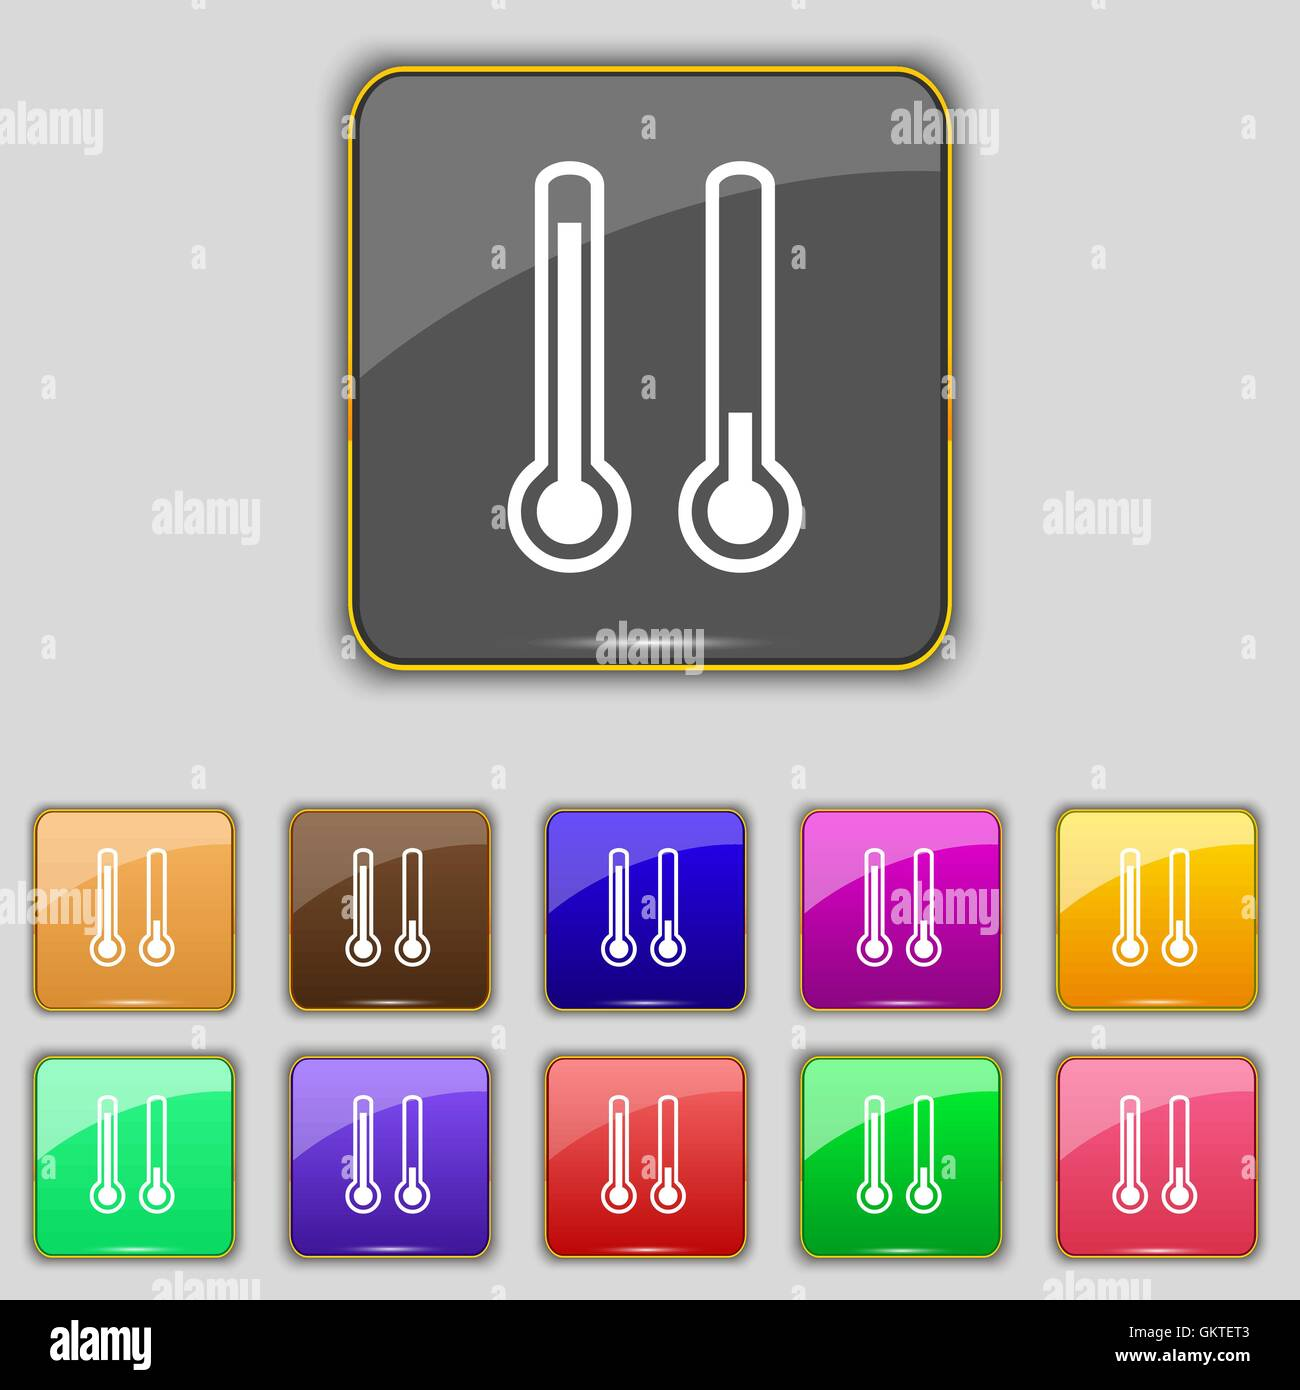 Thermometer Icon High Low Temperature Stock Photos & Thermometer ...